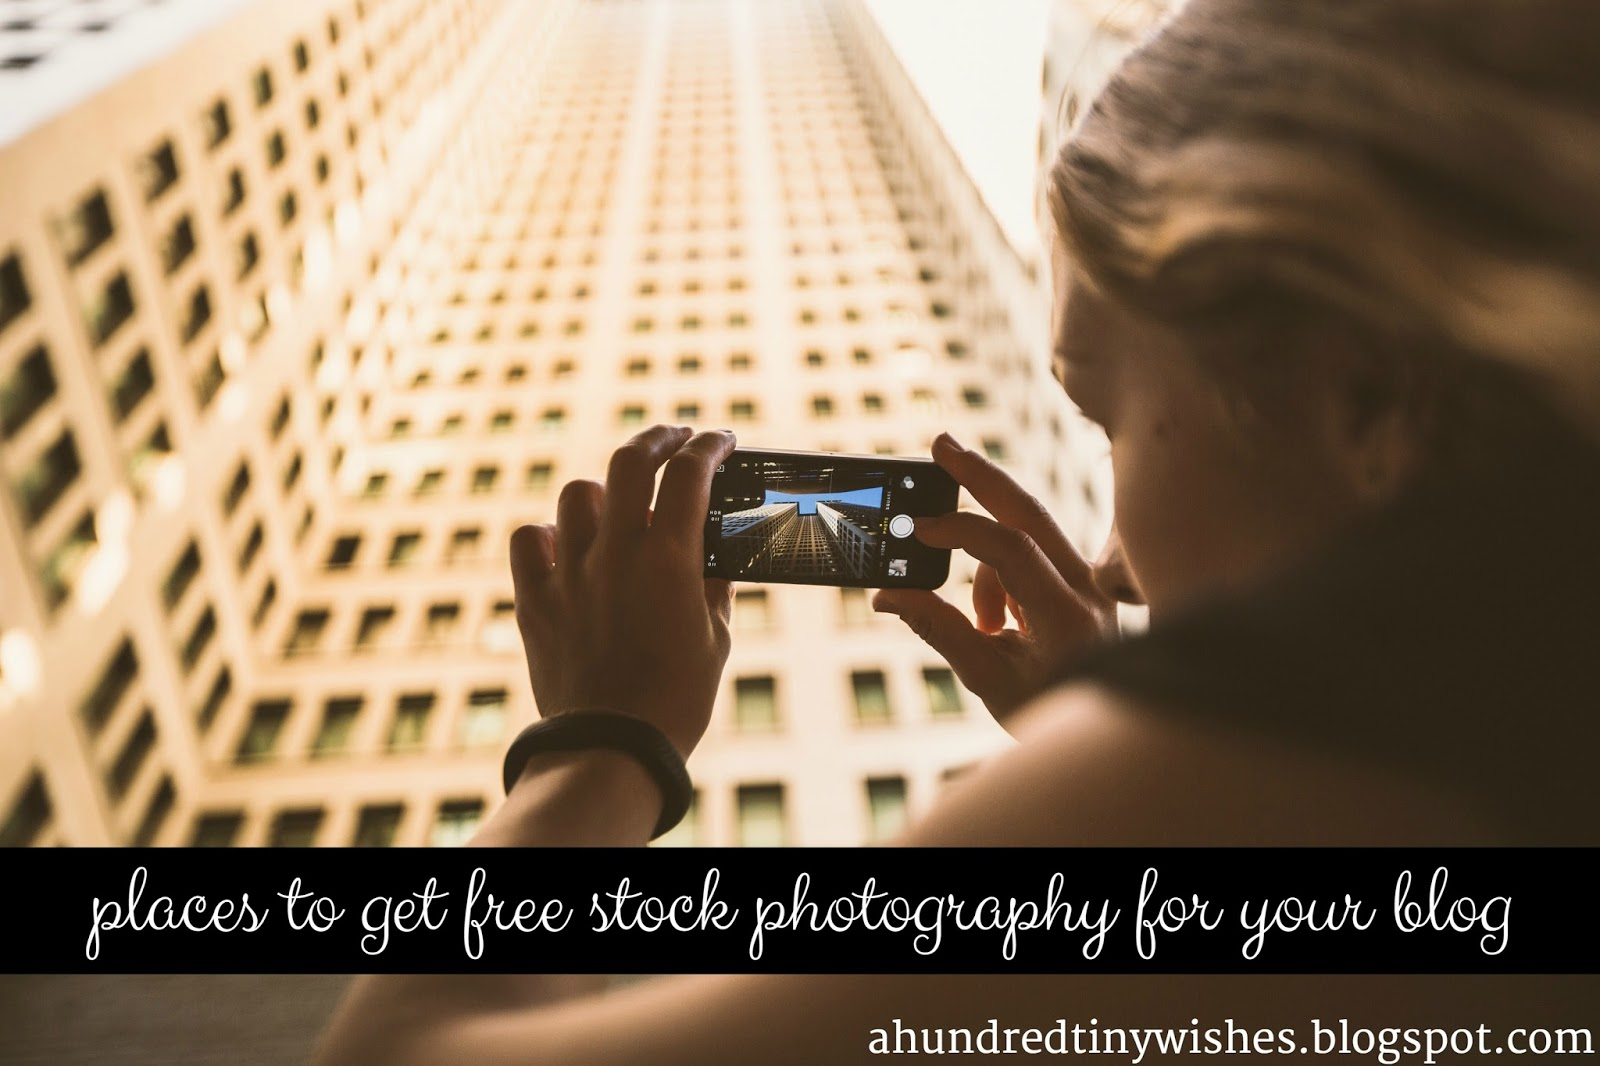 free stock photos for blogging